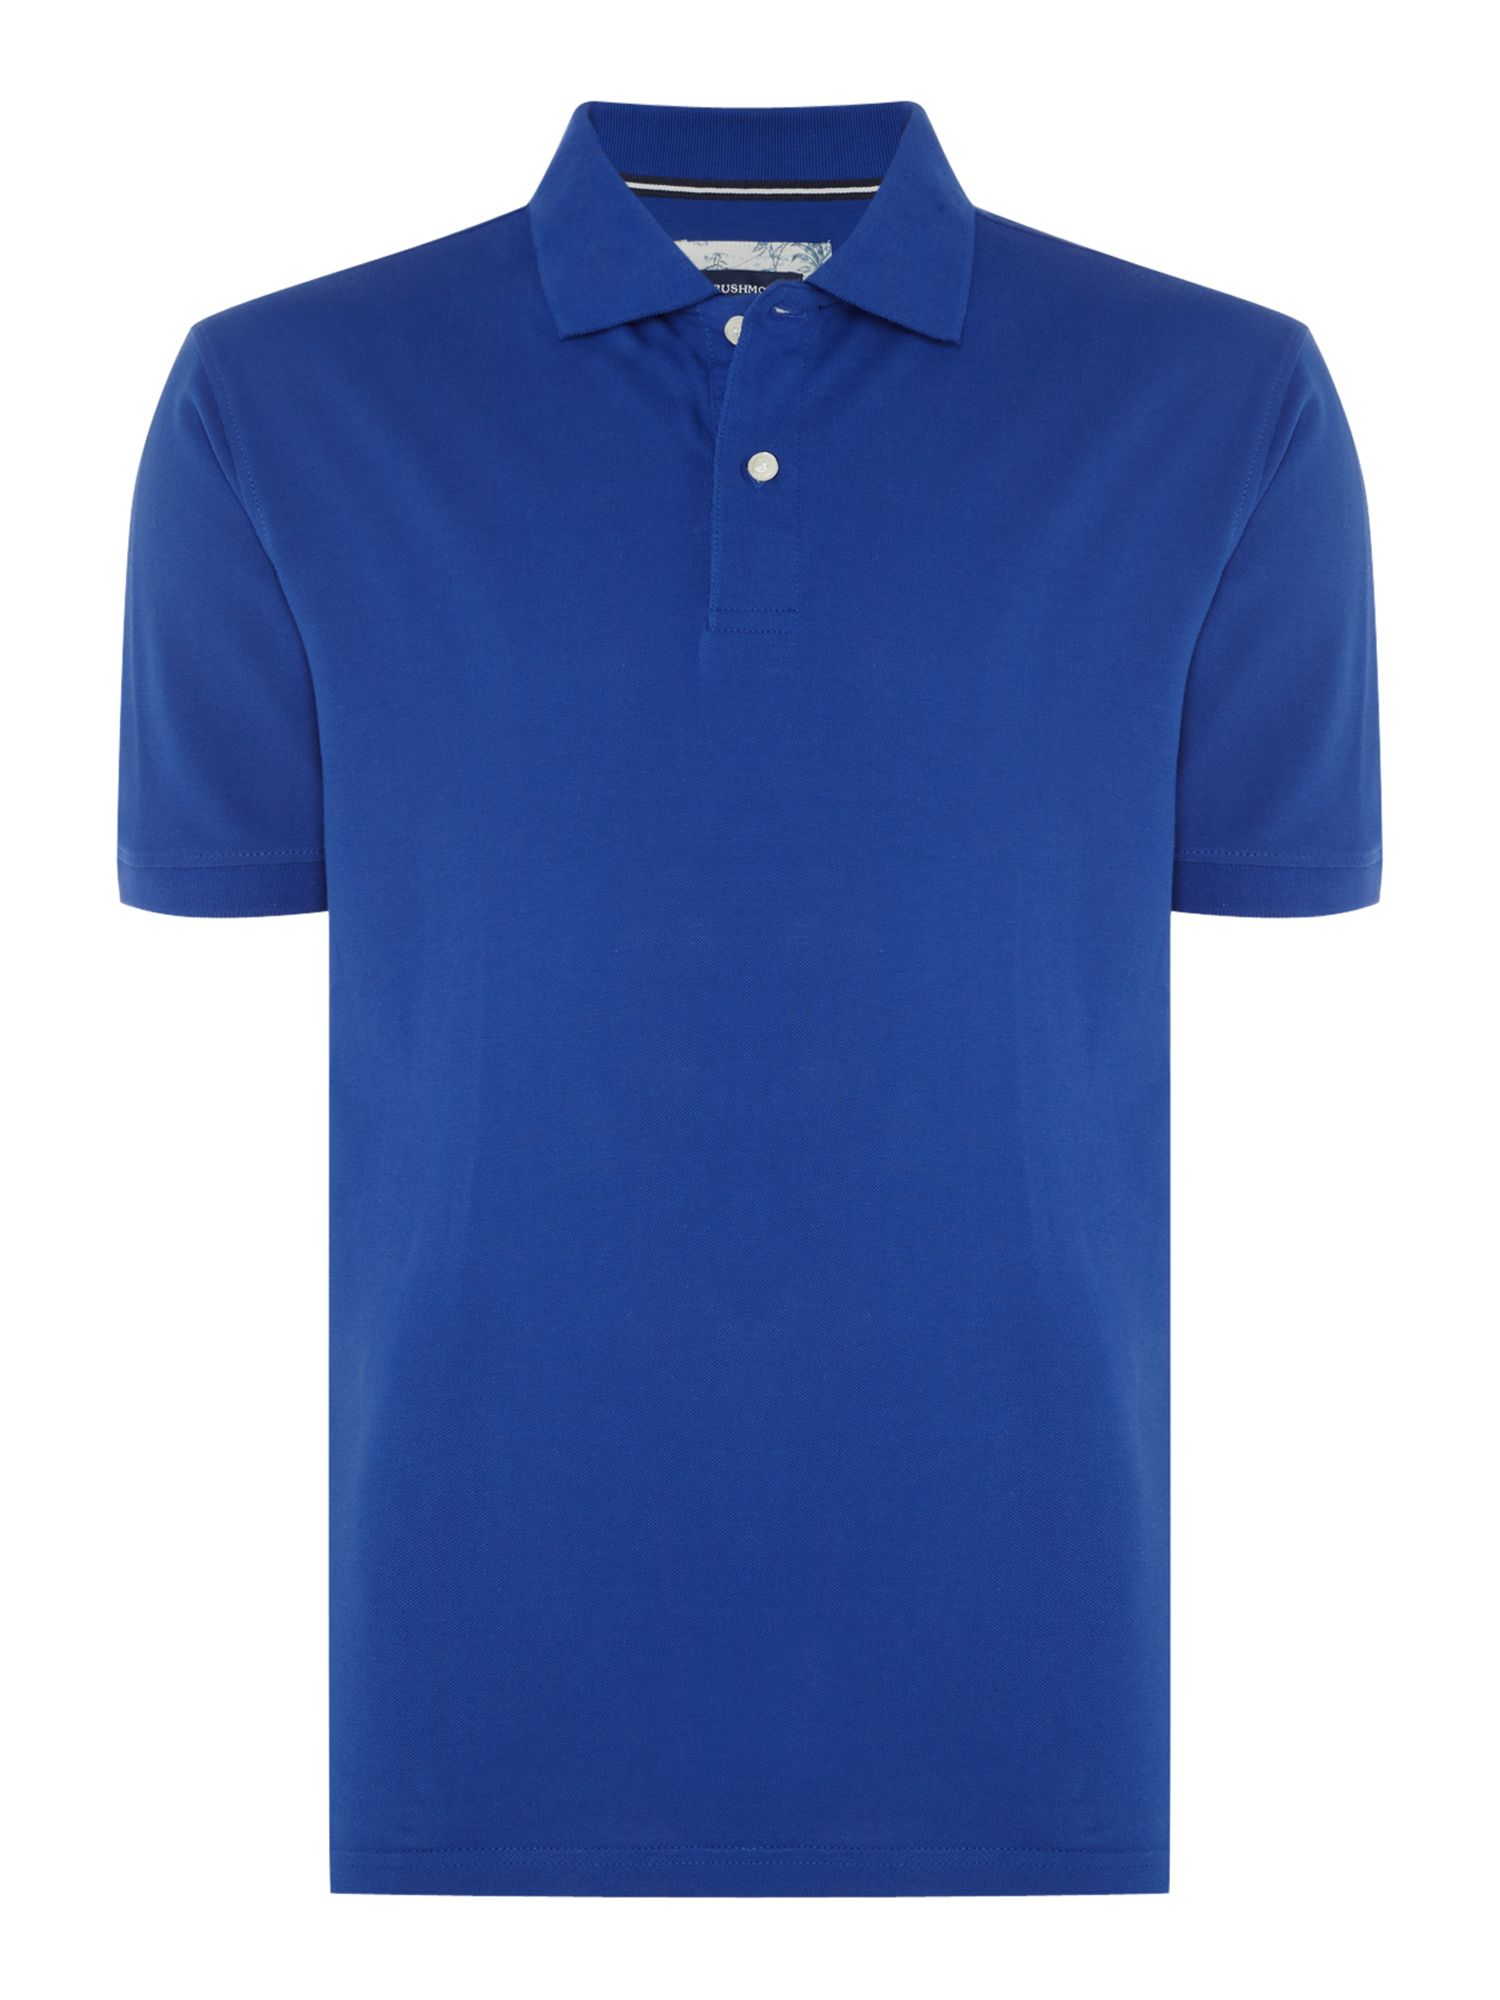 Men's Rushmore Rushmore Polo Top, Royal